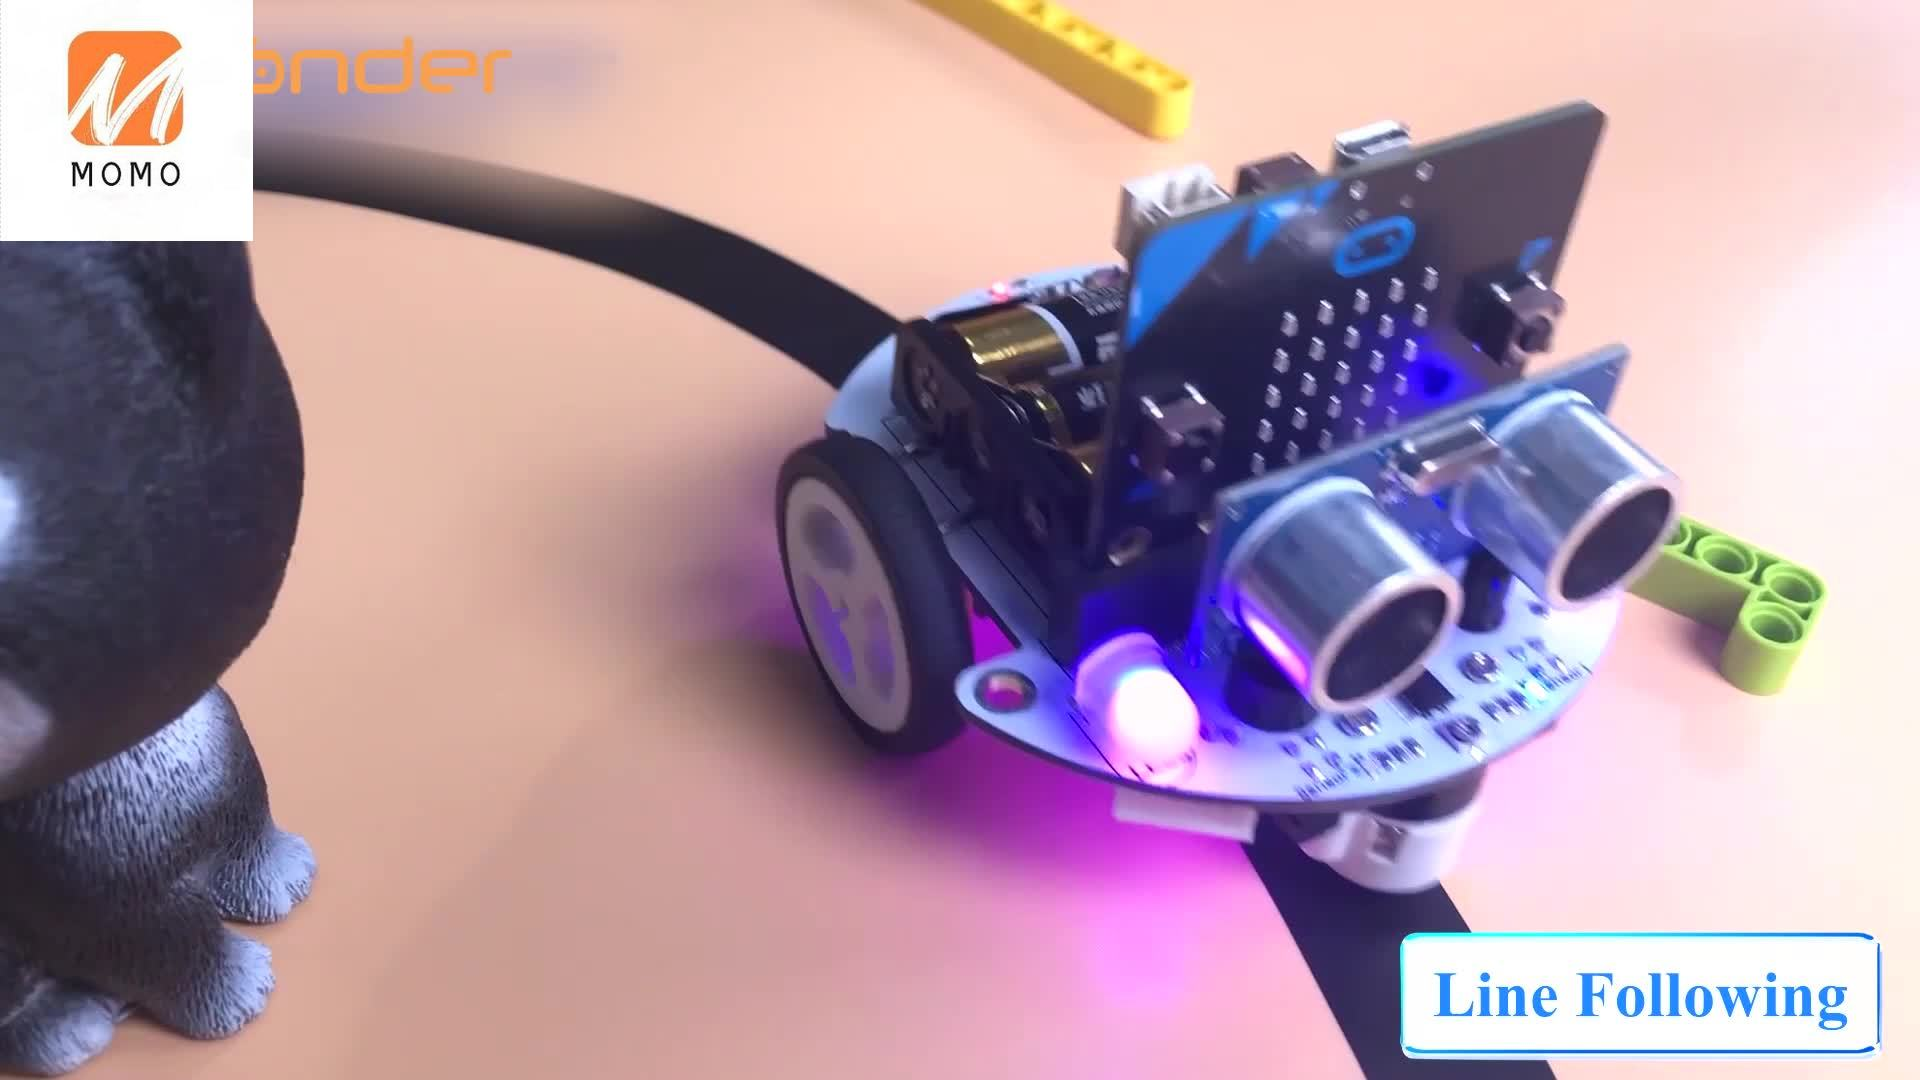 New Arrival Hiwonder Microbot Car Micro:bit Controller STEAM Beginner Coding and Learning with Wholesale Price